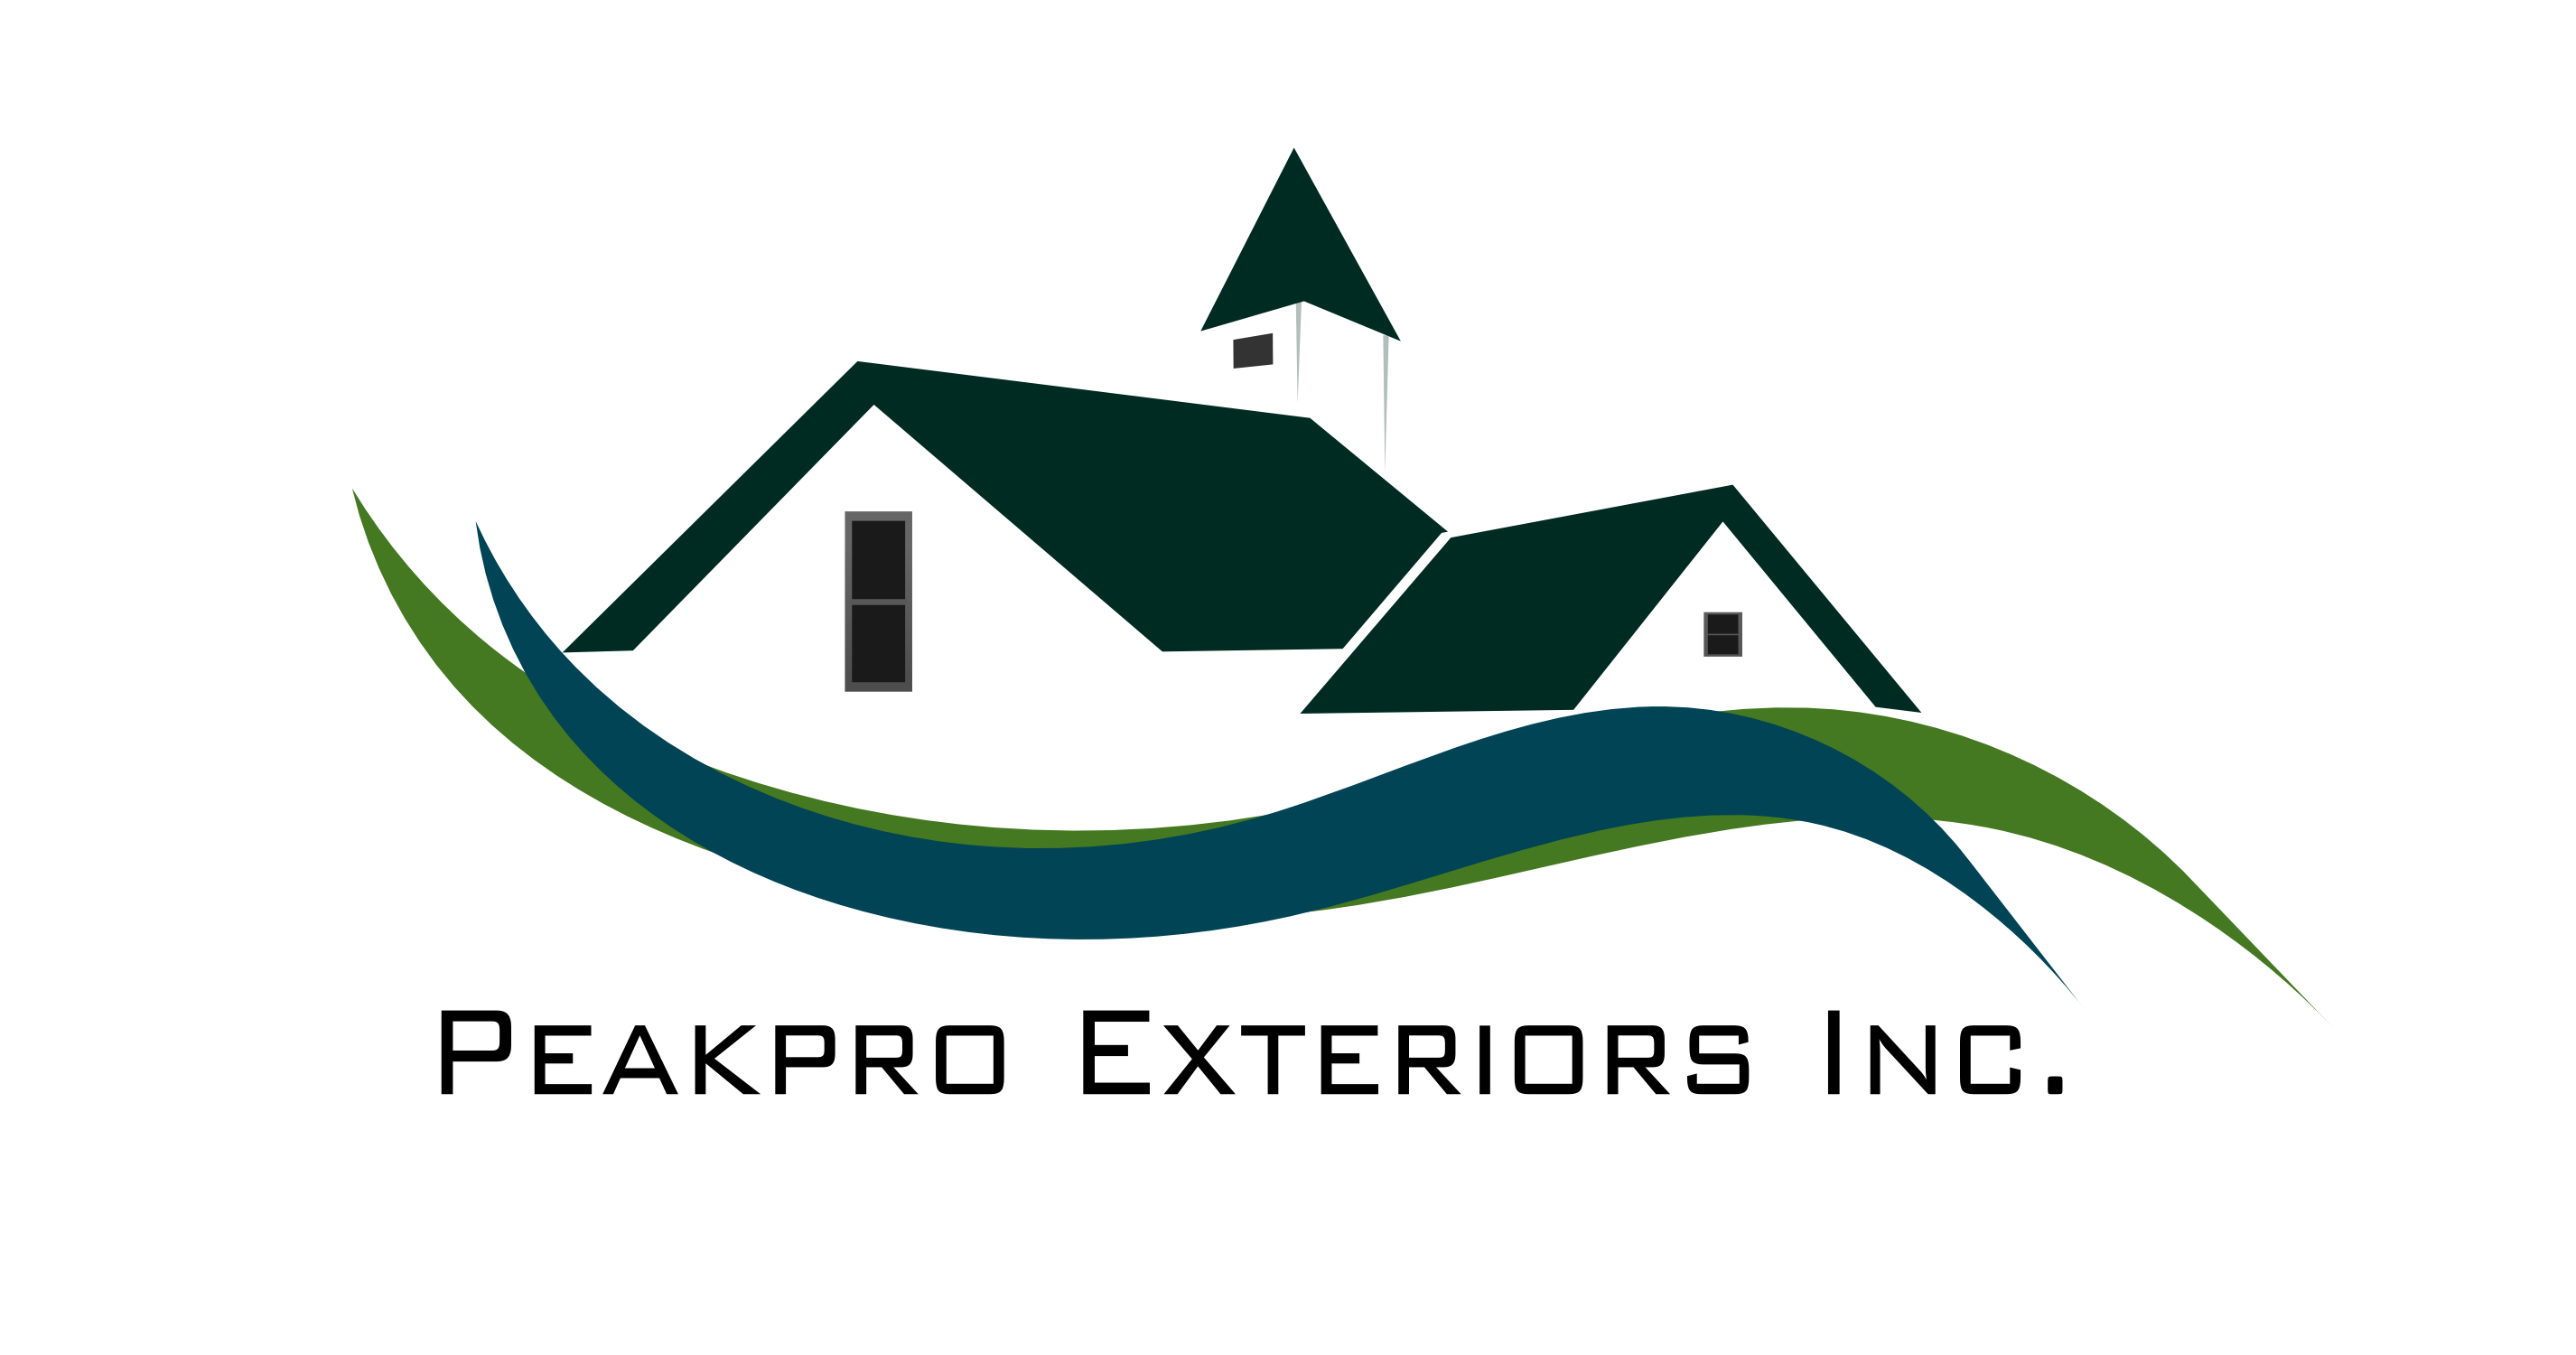 Logo Design by Arindam Khanda - Entry No. 31 in the Logo Design Contest Captivating Logo Design for Peakpro Exteriors Inc..